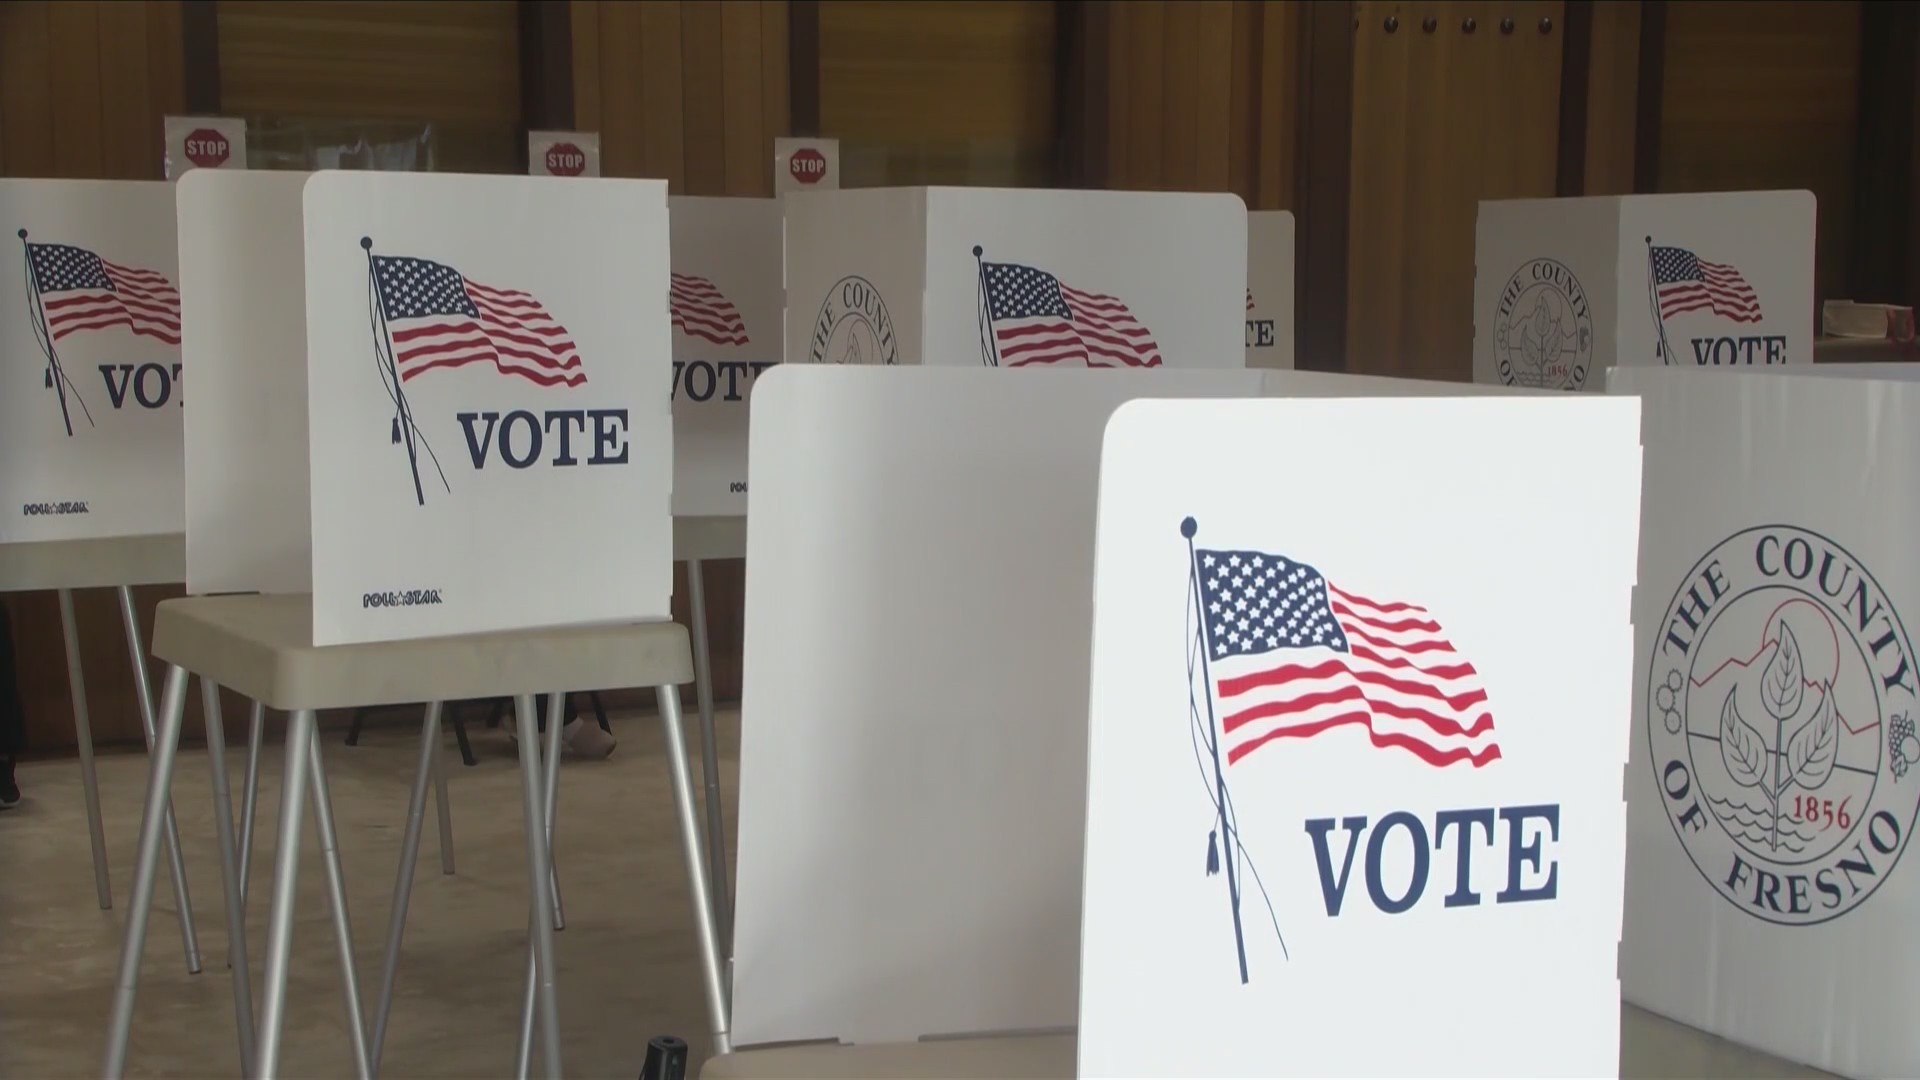 High turnout for Clovis municipal election, says Fresno County Clerk